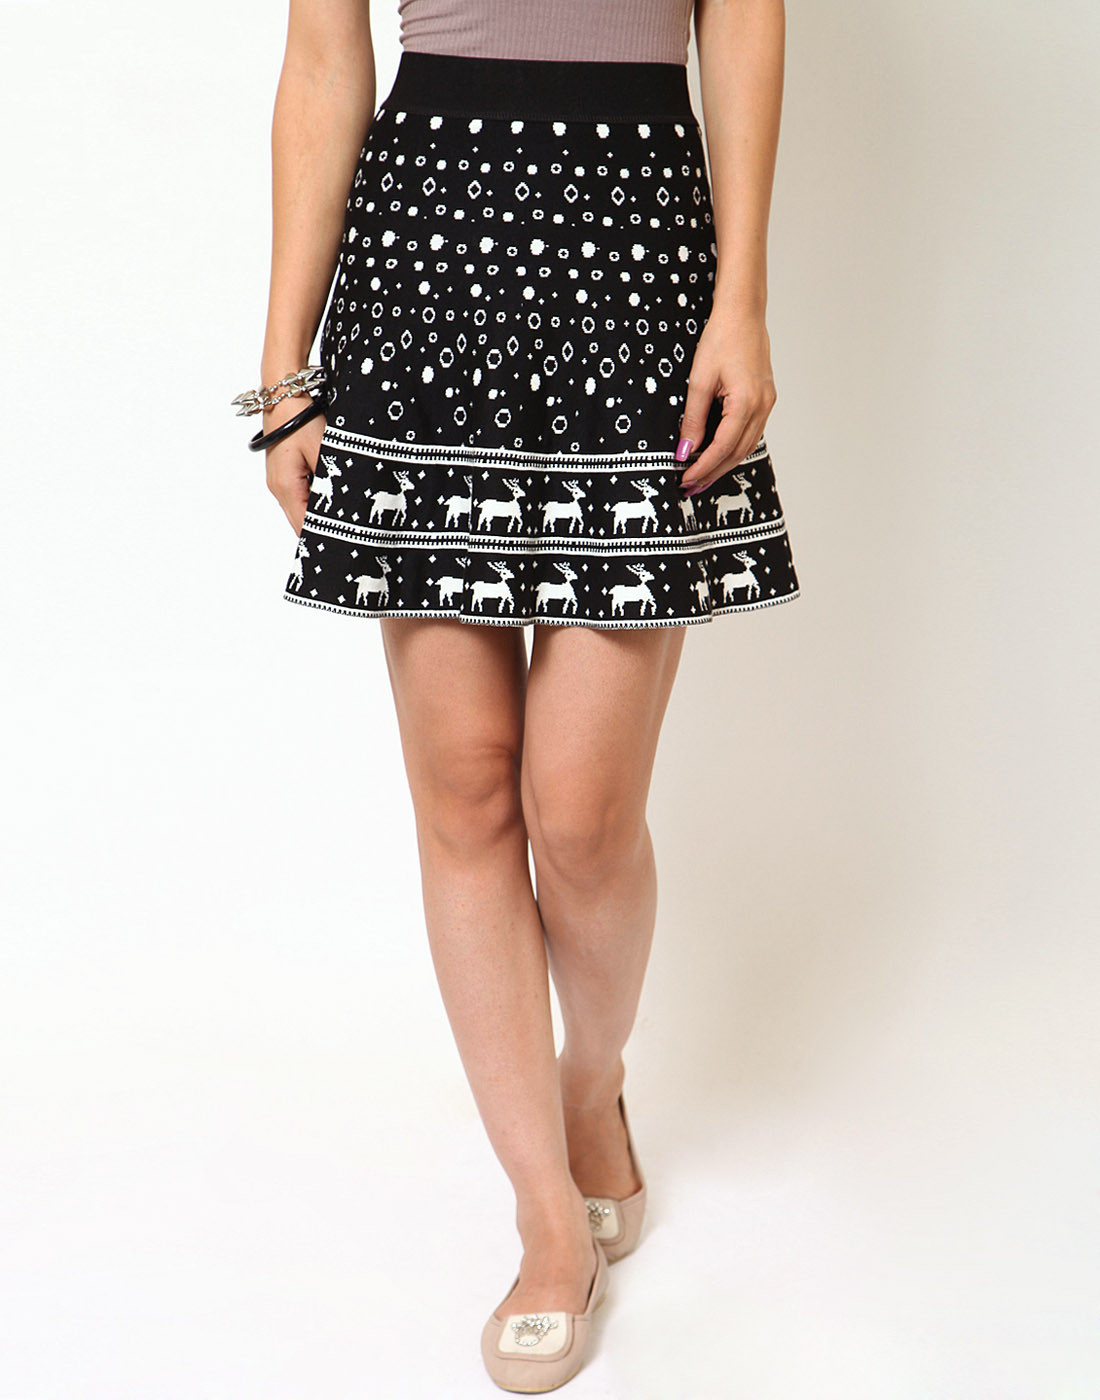 Sportelle USA India Printed Womens A-line Black, White Skirt